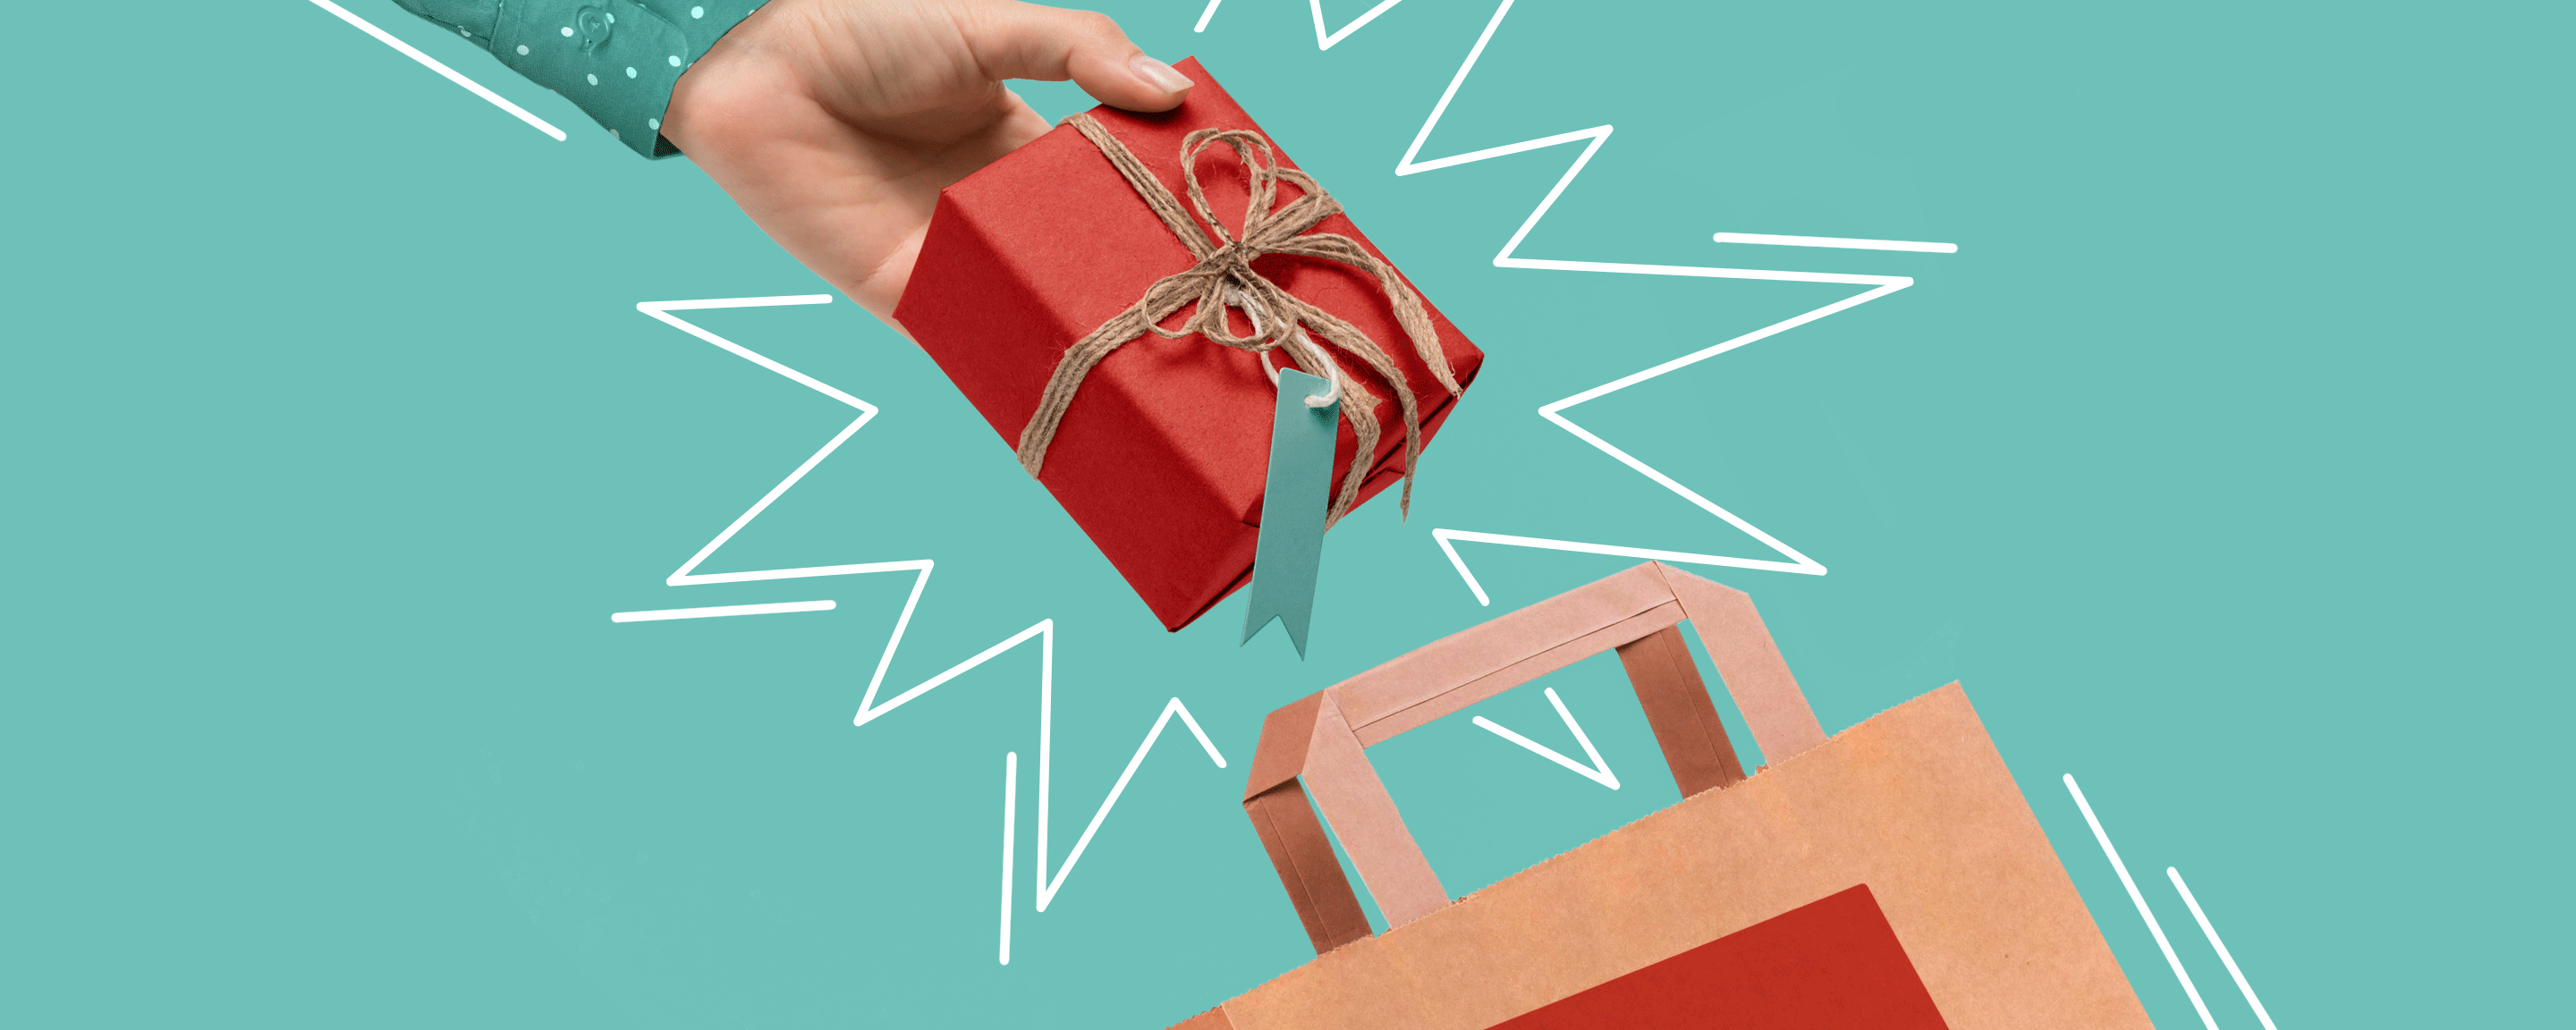 19 Customer Appreciation Gift Ideas to Thank Your Customers